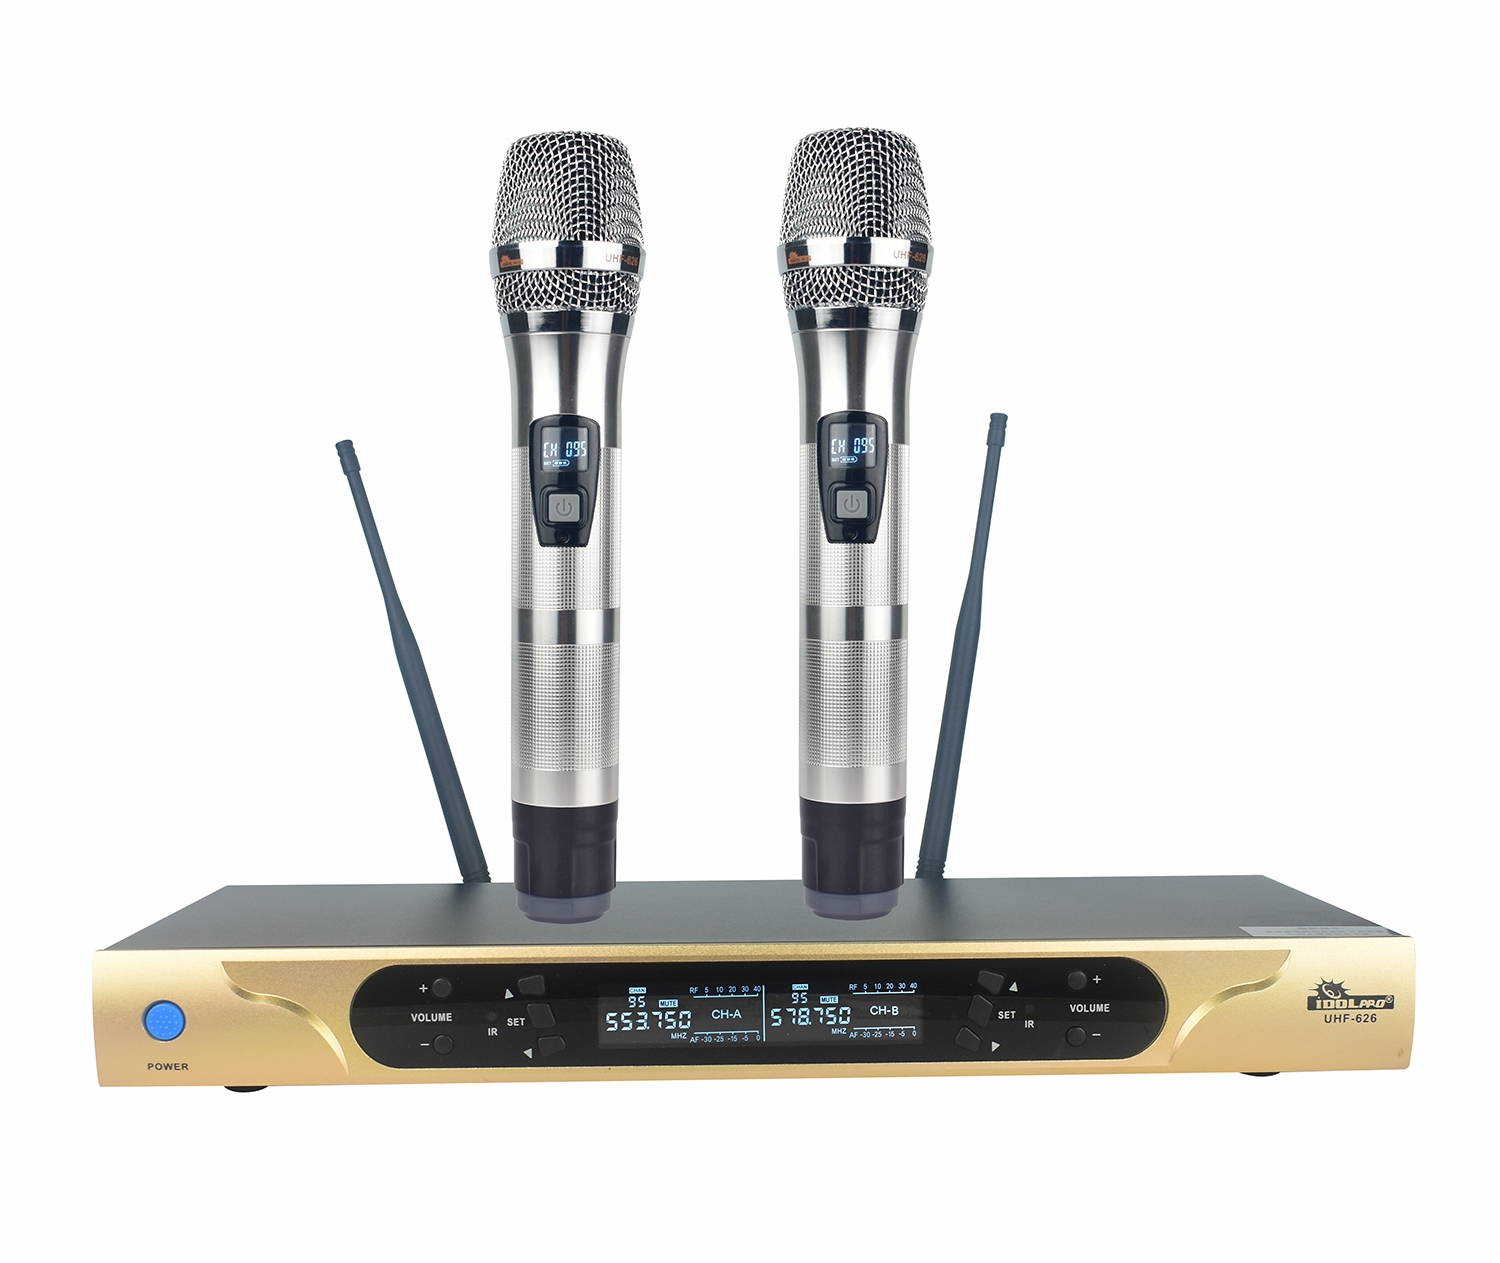 "IDOLpro UHF-626 Dual Channel Wireless Microphones With New Digital Technology <font color="" orange""><b>NEW 2020</b></font>"